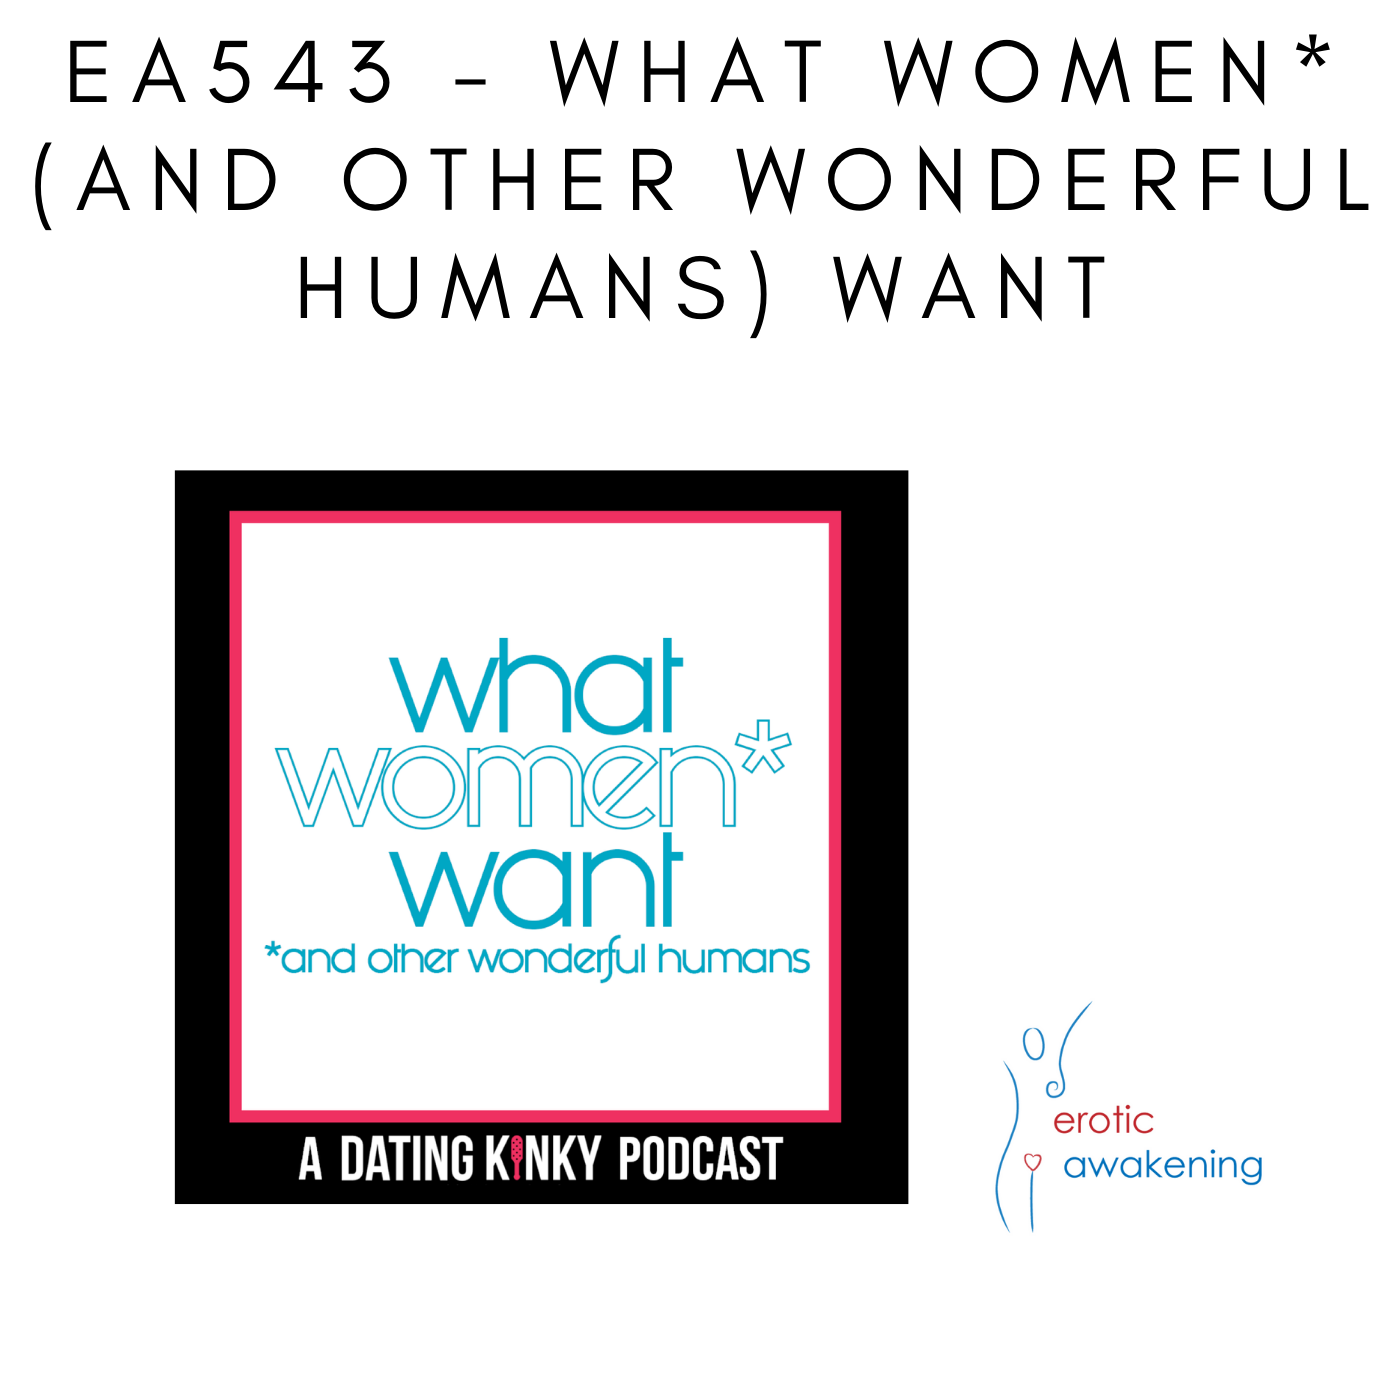 Erotic Awakening Podcast - EA543 - What Women* (*and other wonderful humans) Want